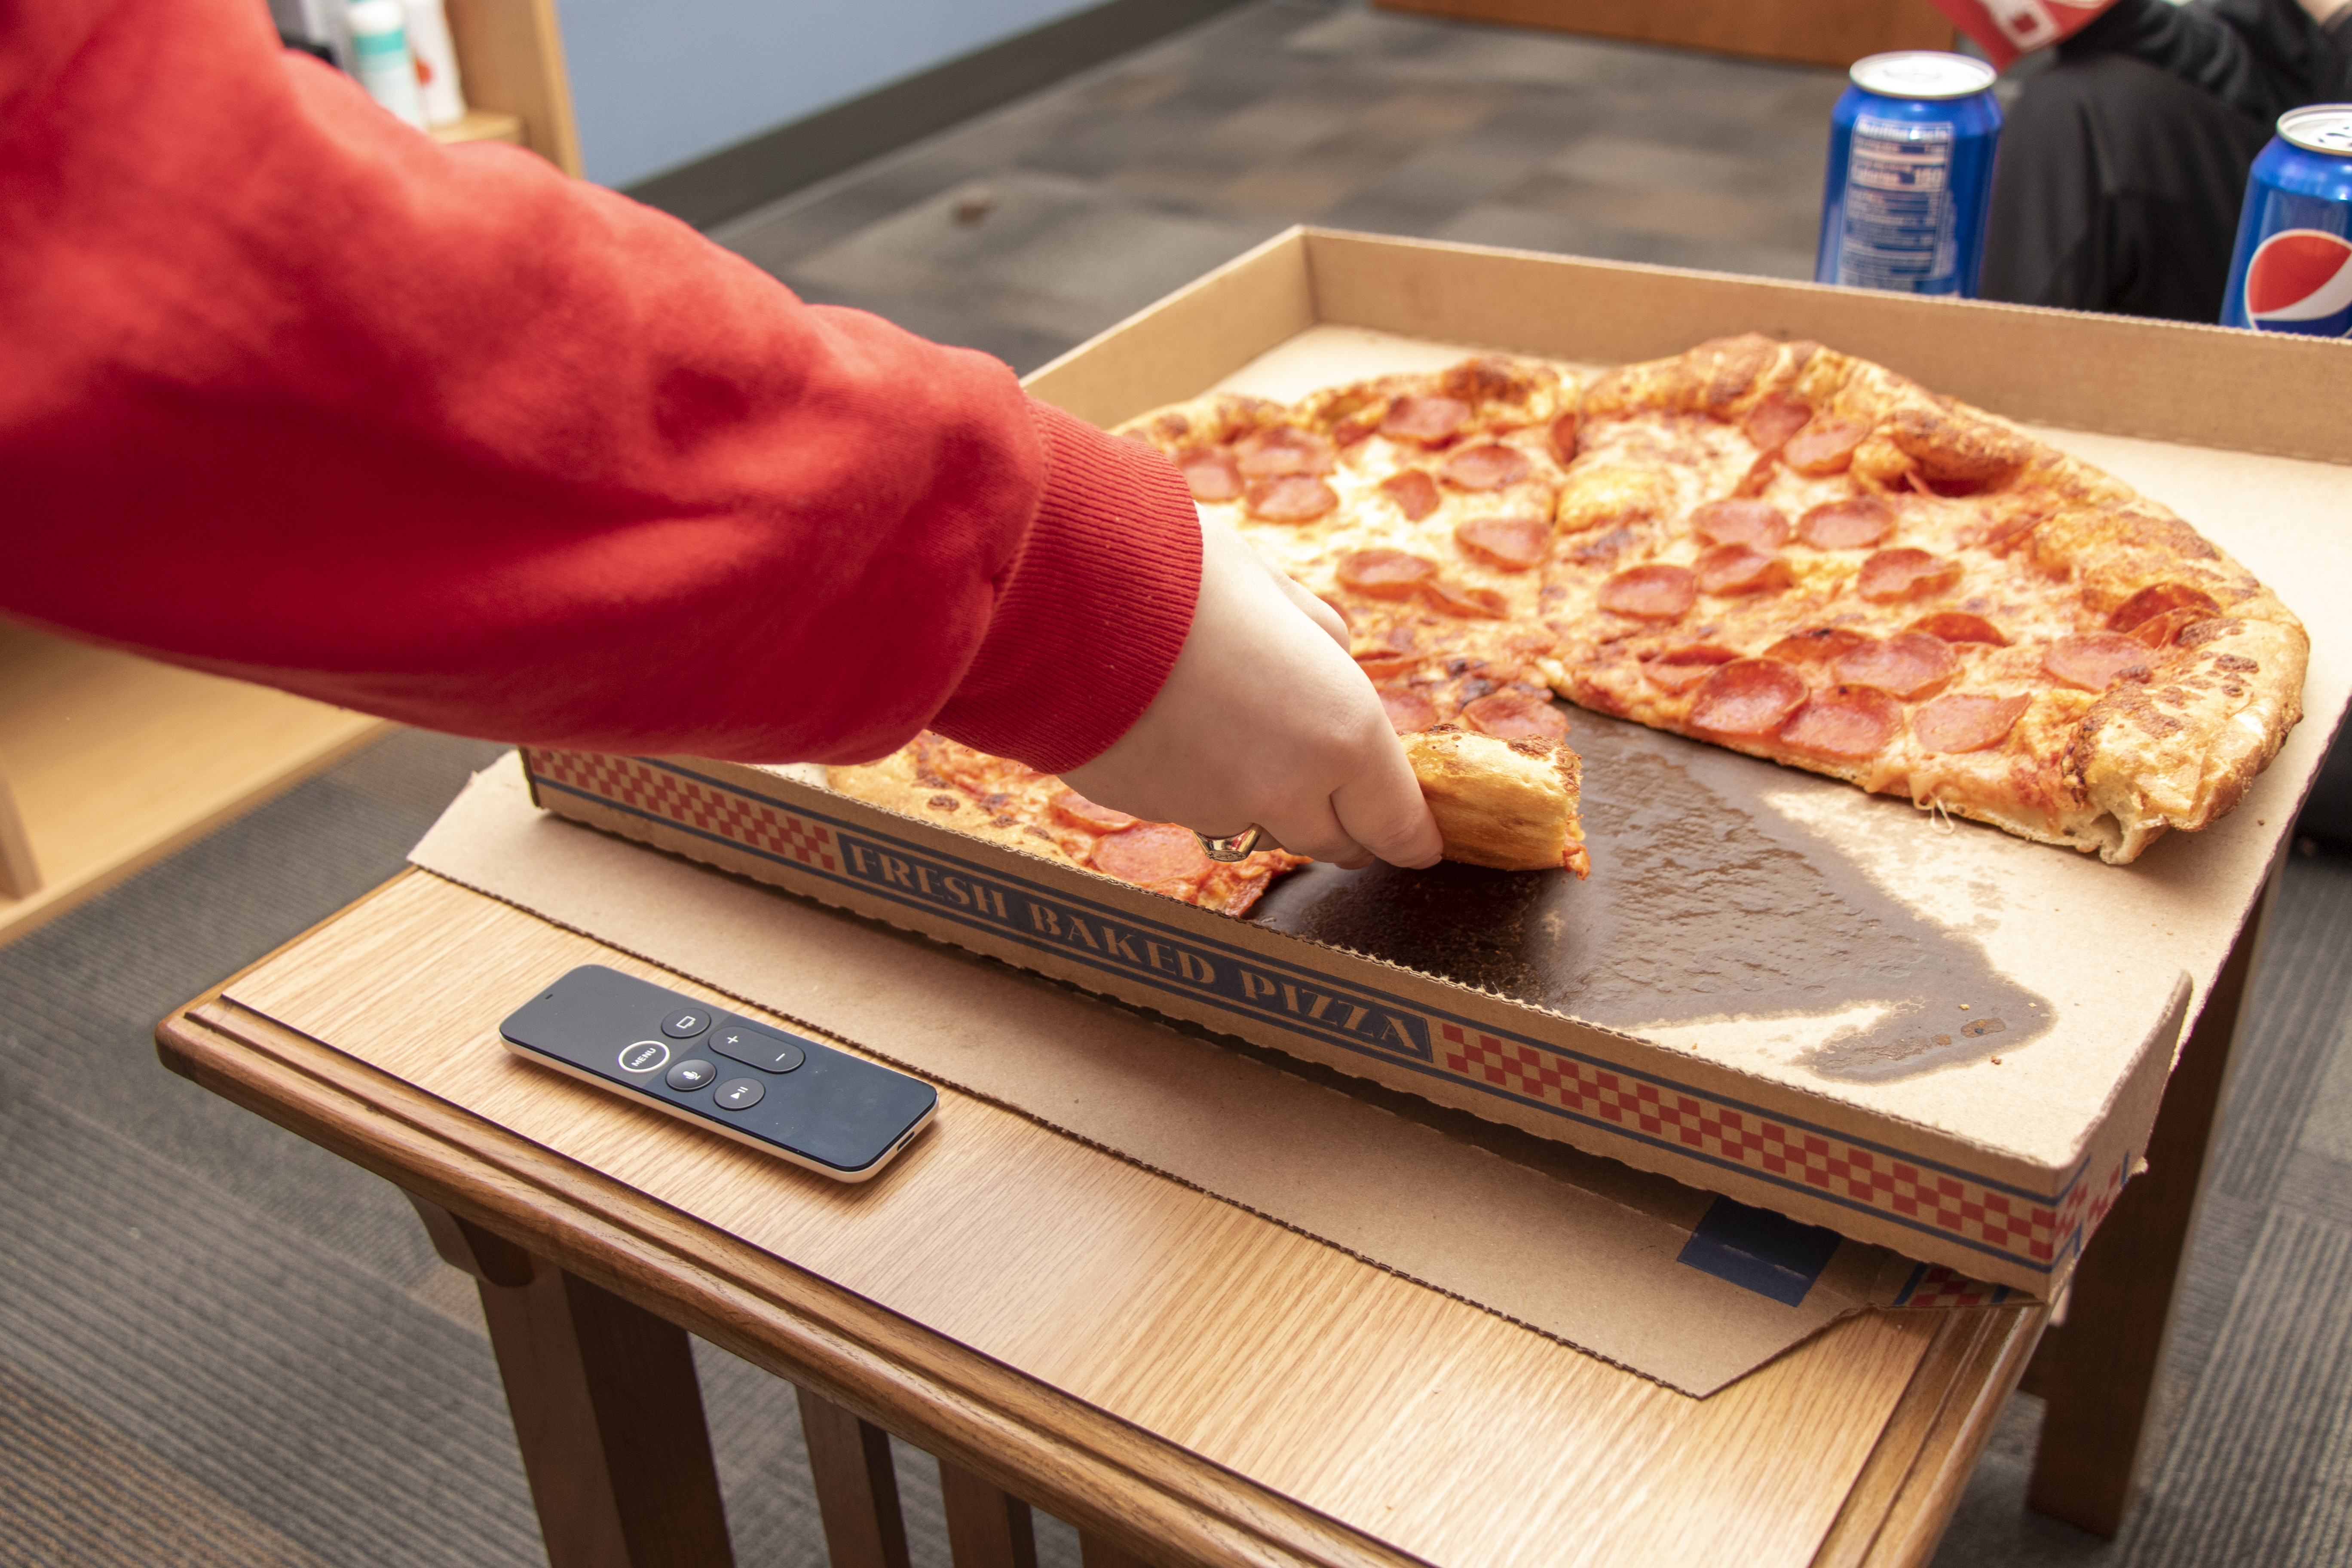 A student grabs a slice of pizza from a pizza box.